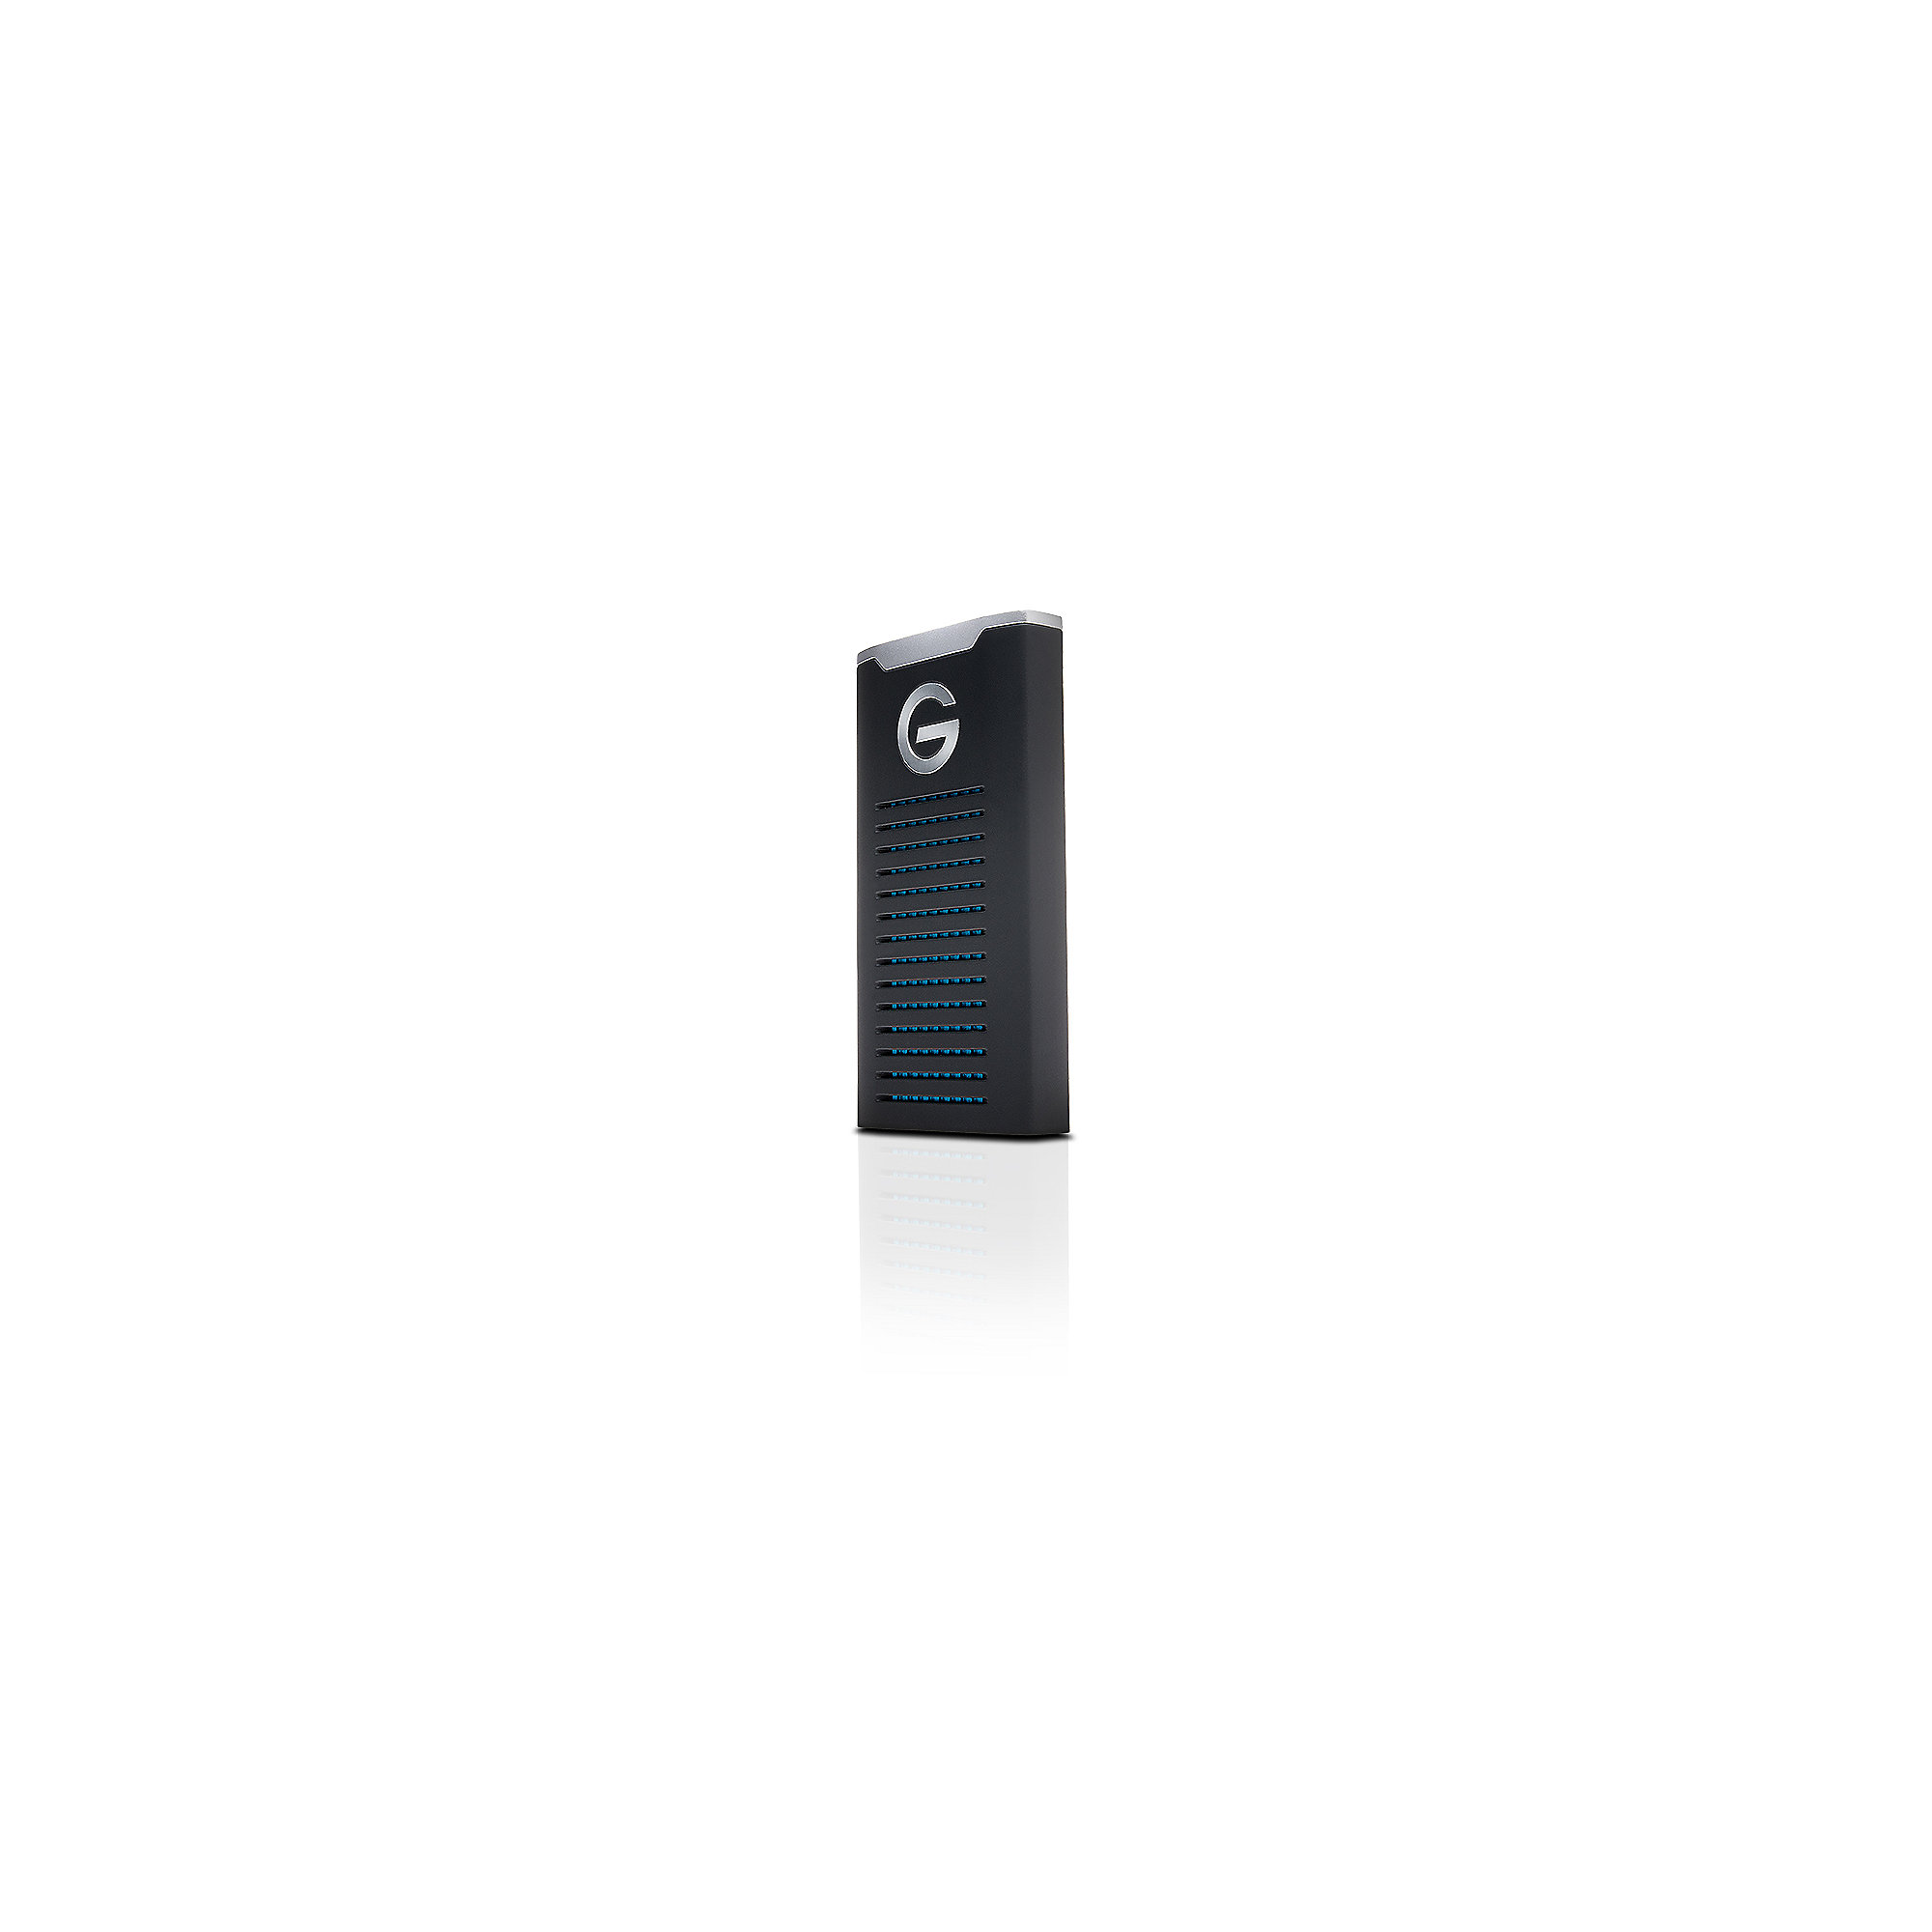 G-Technology G-DRIVE mobile SSD R-Series 500GB USB 3.1, schwarz